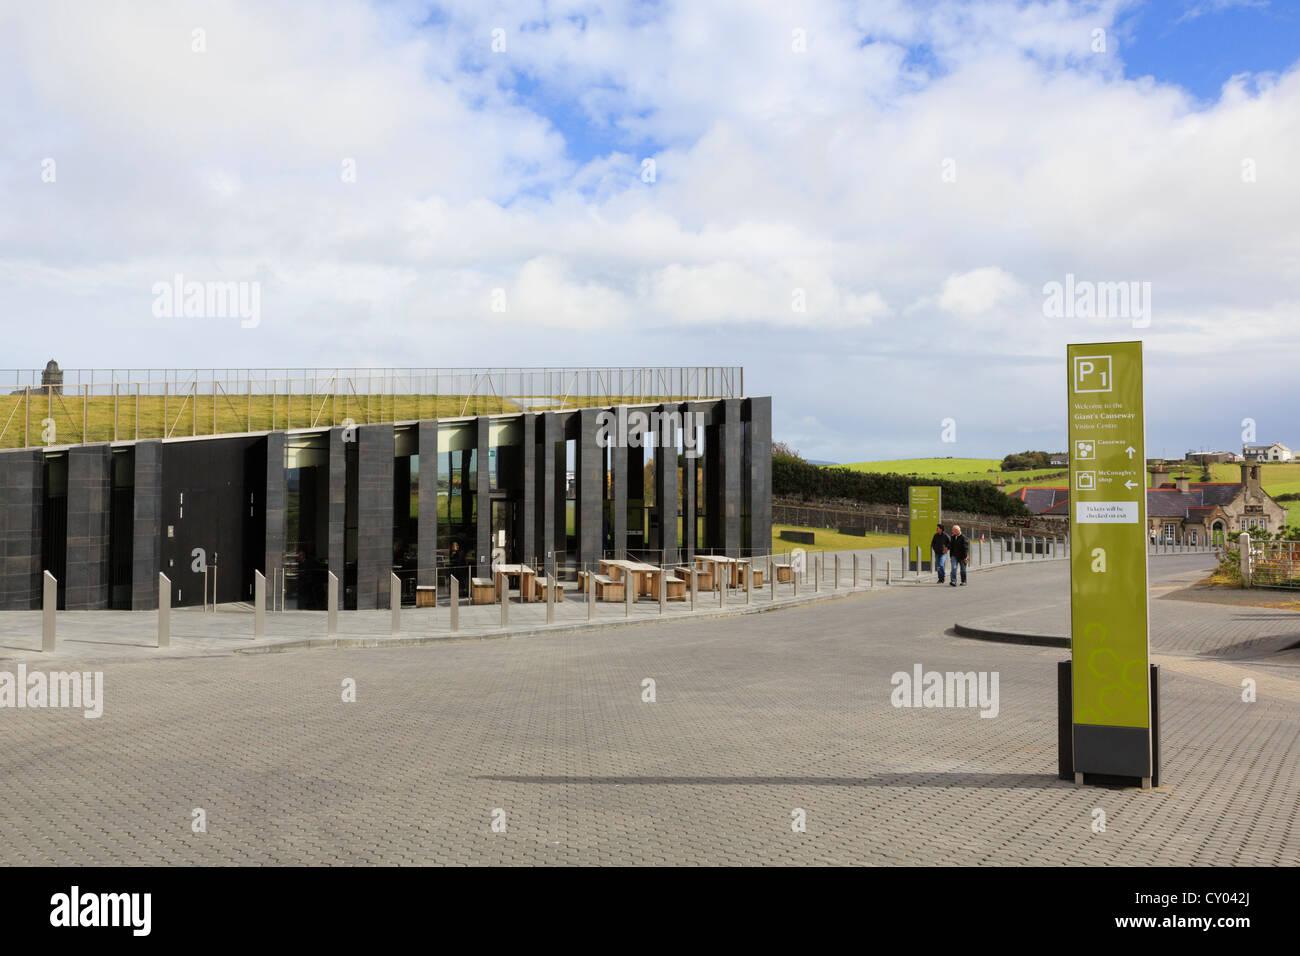 The new Giant's Causeway visitors centre building with grass roof and basalt columns. Antrim Northern Ireland - Stock Image